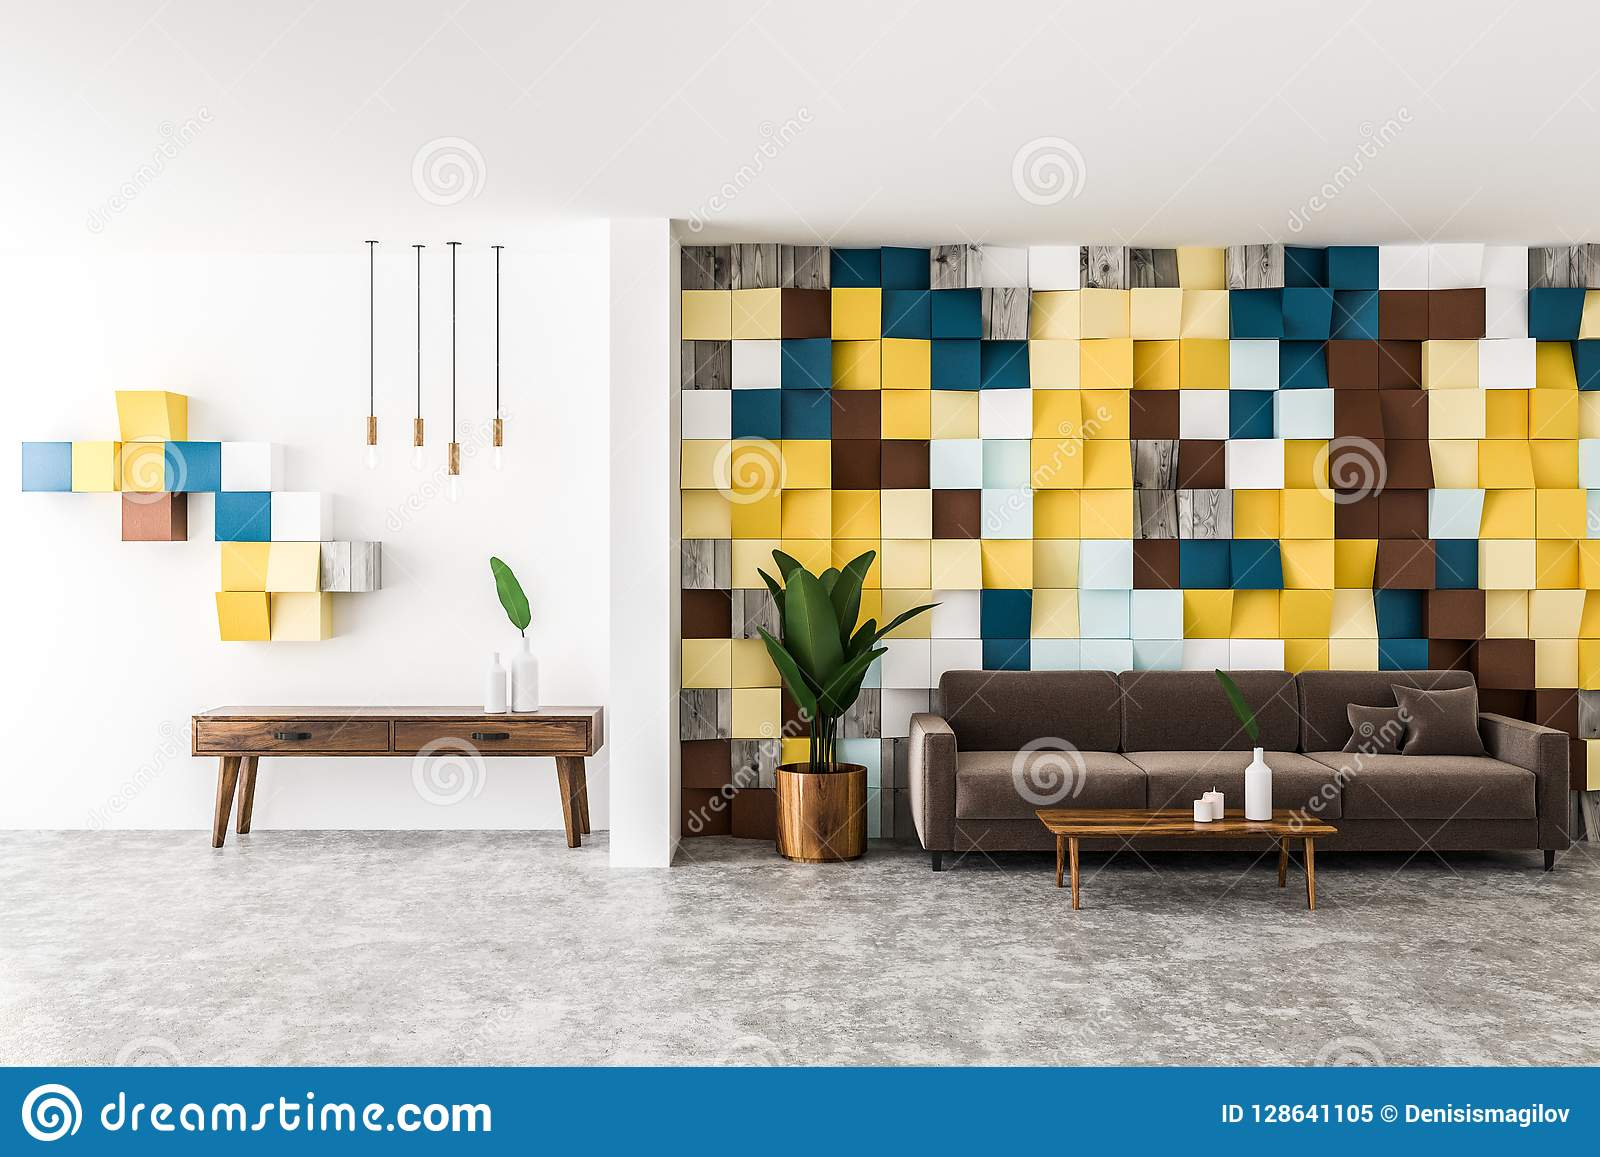 Colored Tiles Living Room Sofa And Cabinet Stock Illustration Illustration Of Empty Curtain 128641105